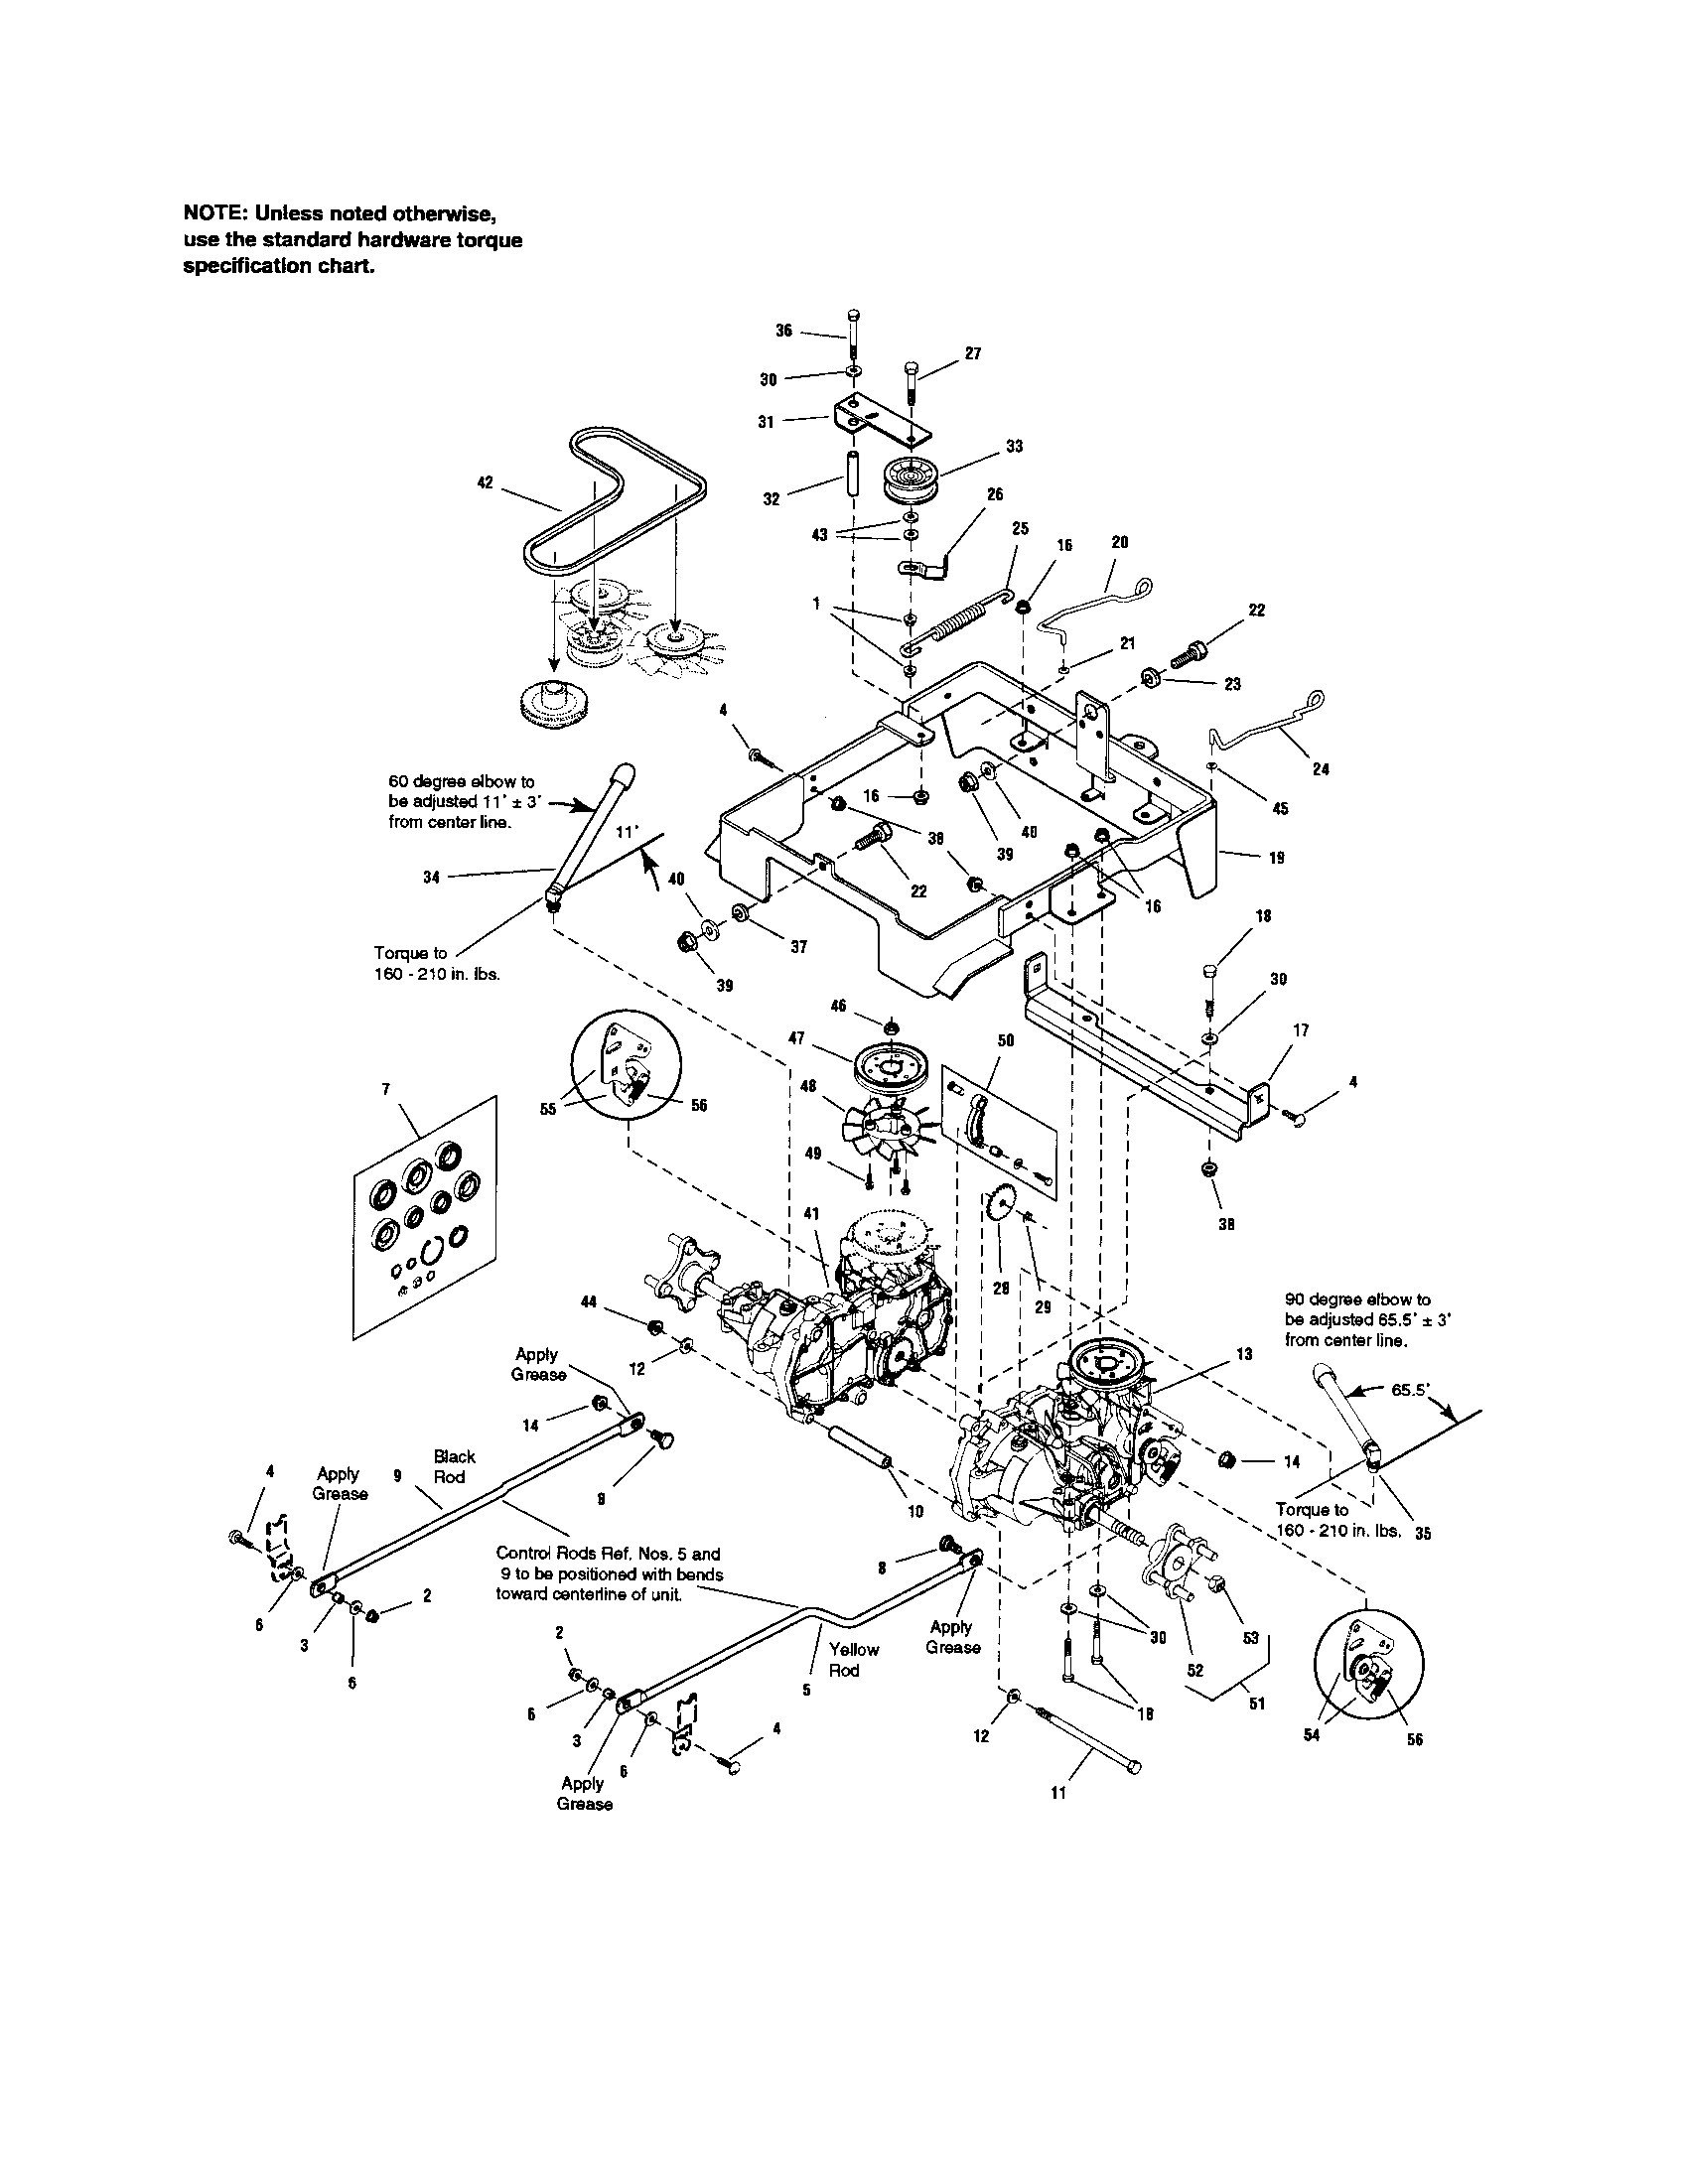 Sears Zt Engine Wiring Diagram